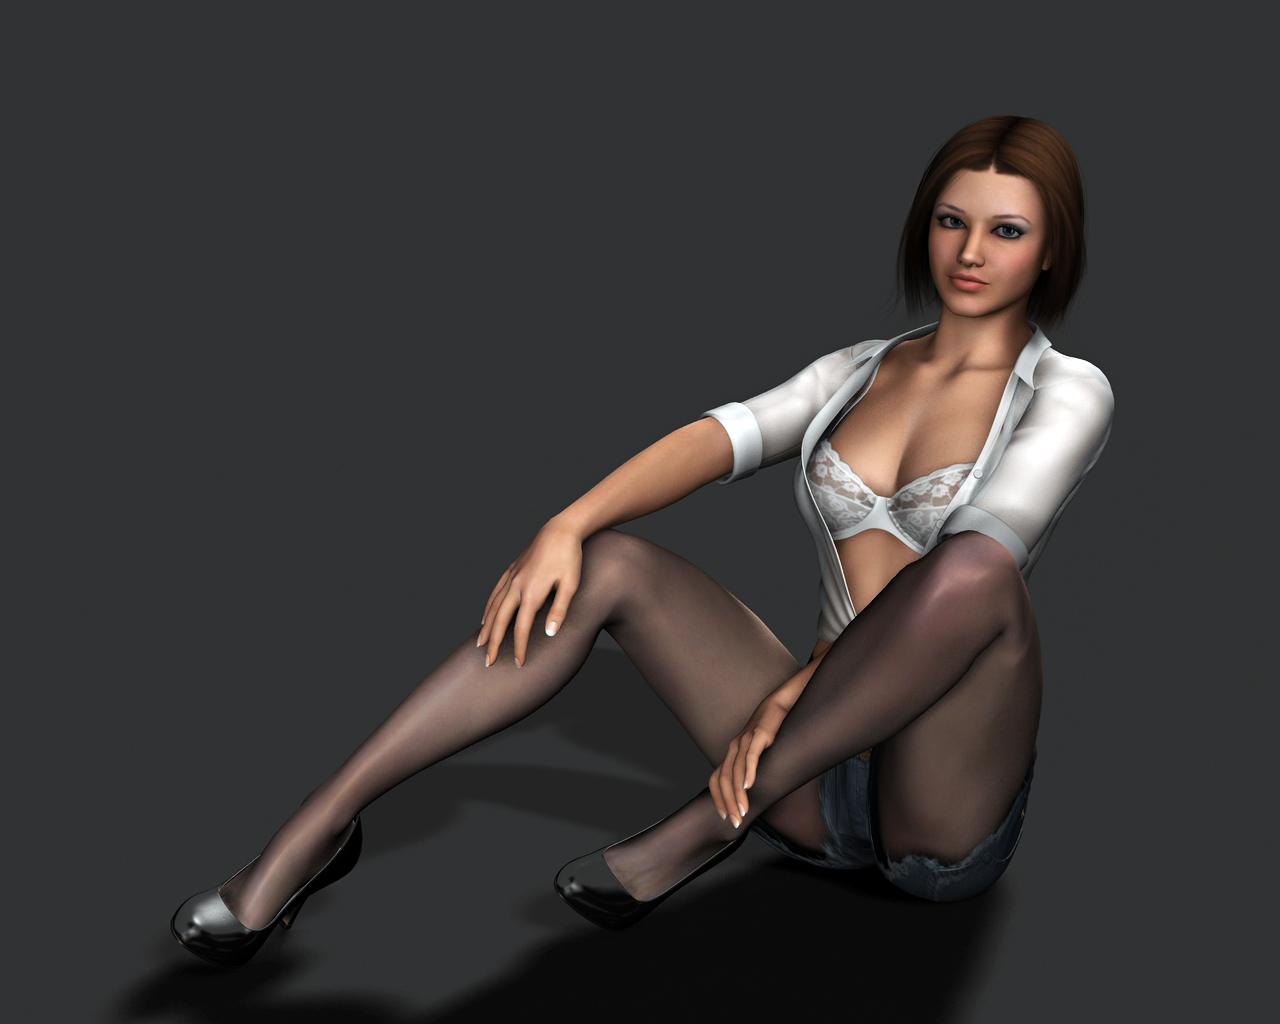 3d amanda hot girl exposed picture